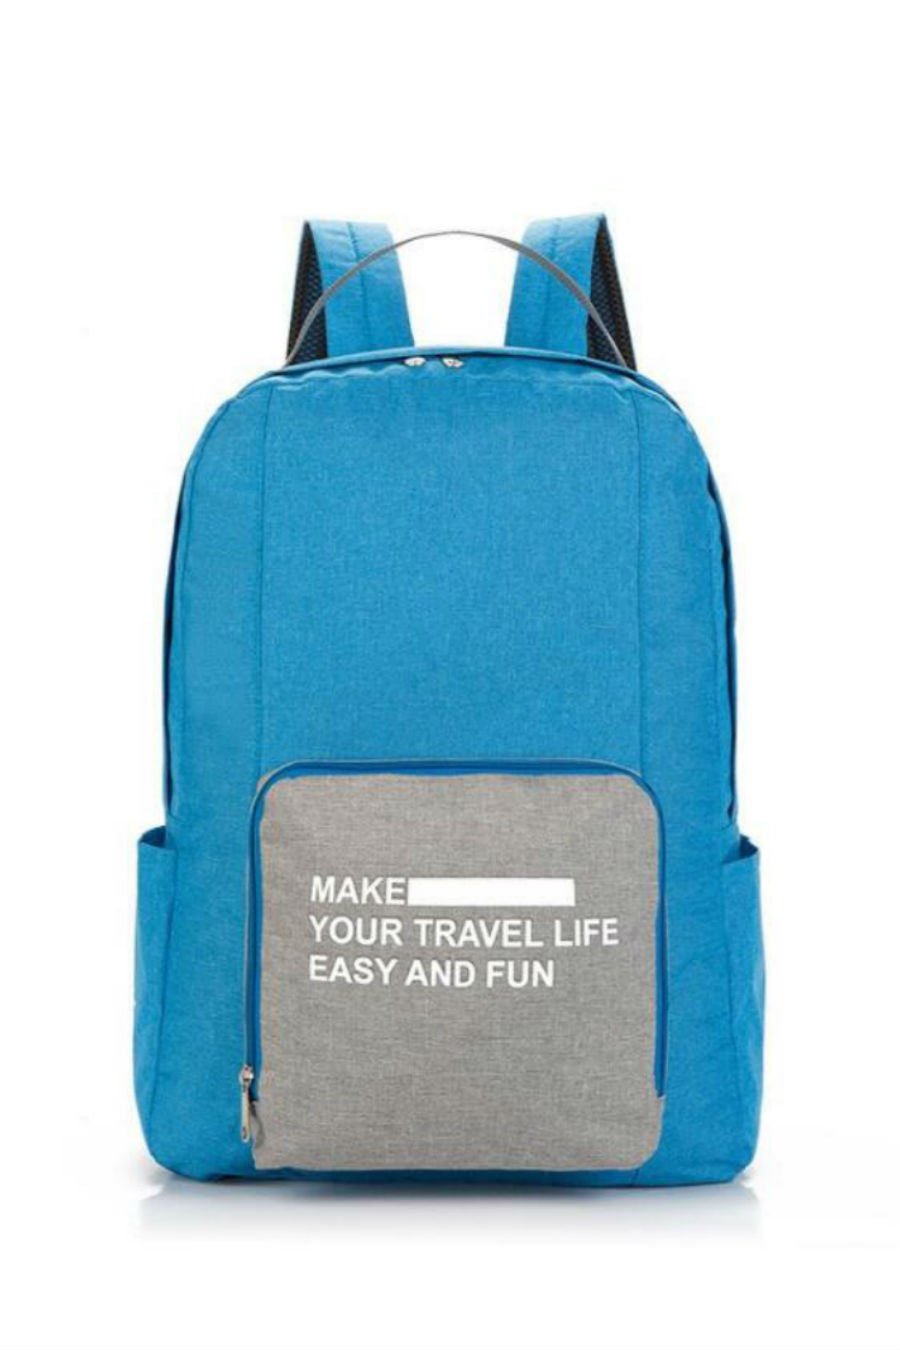 Blue Foldable Travel Backpack